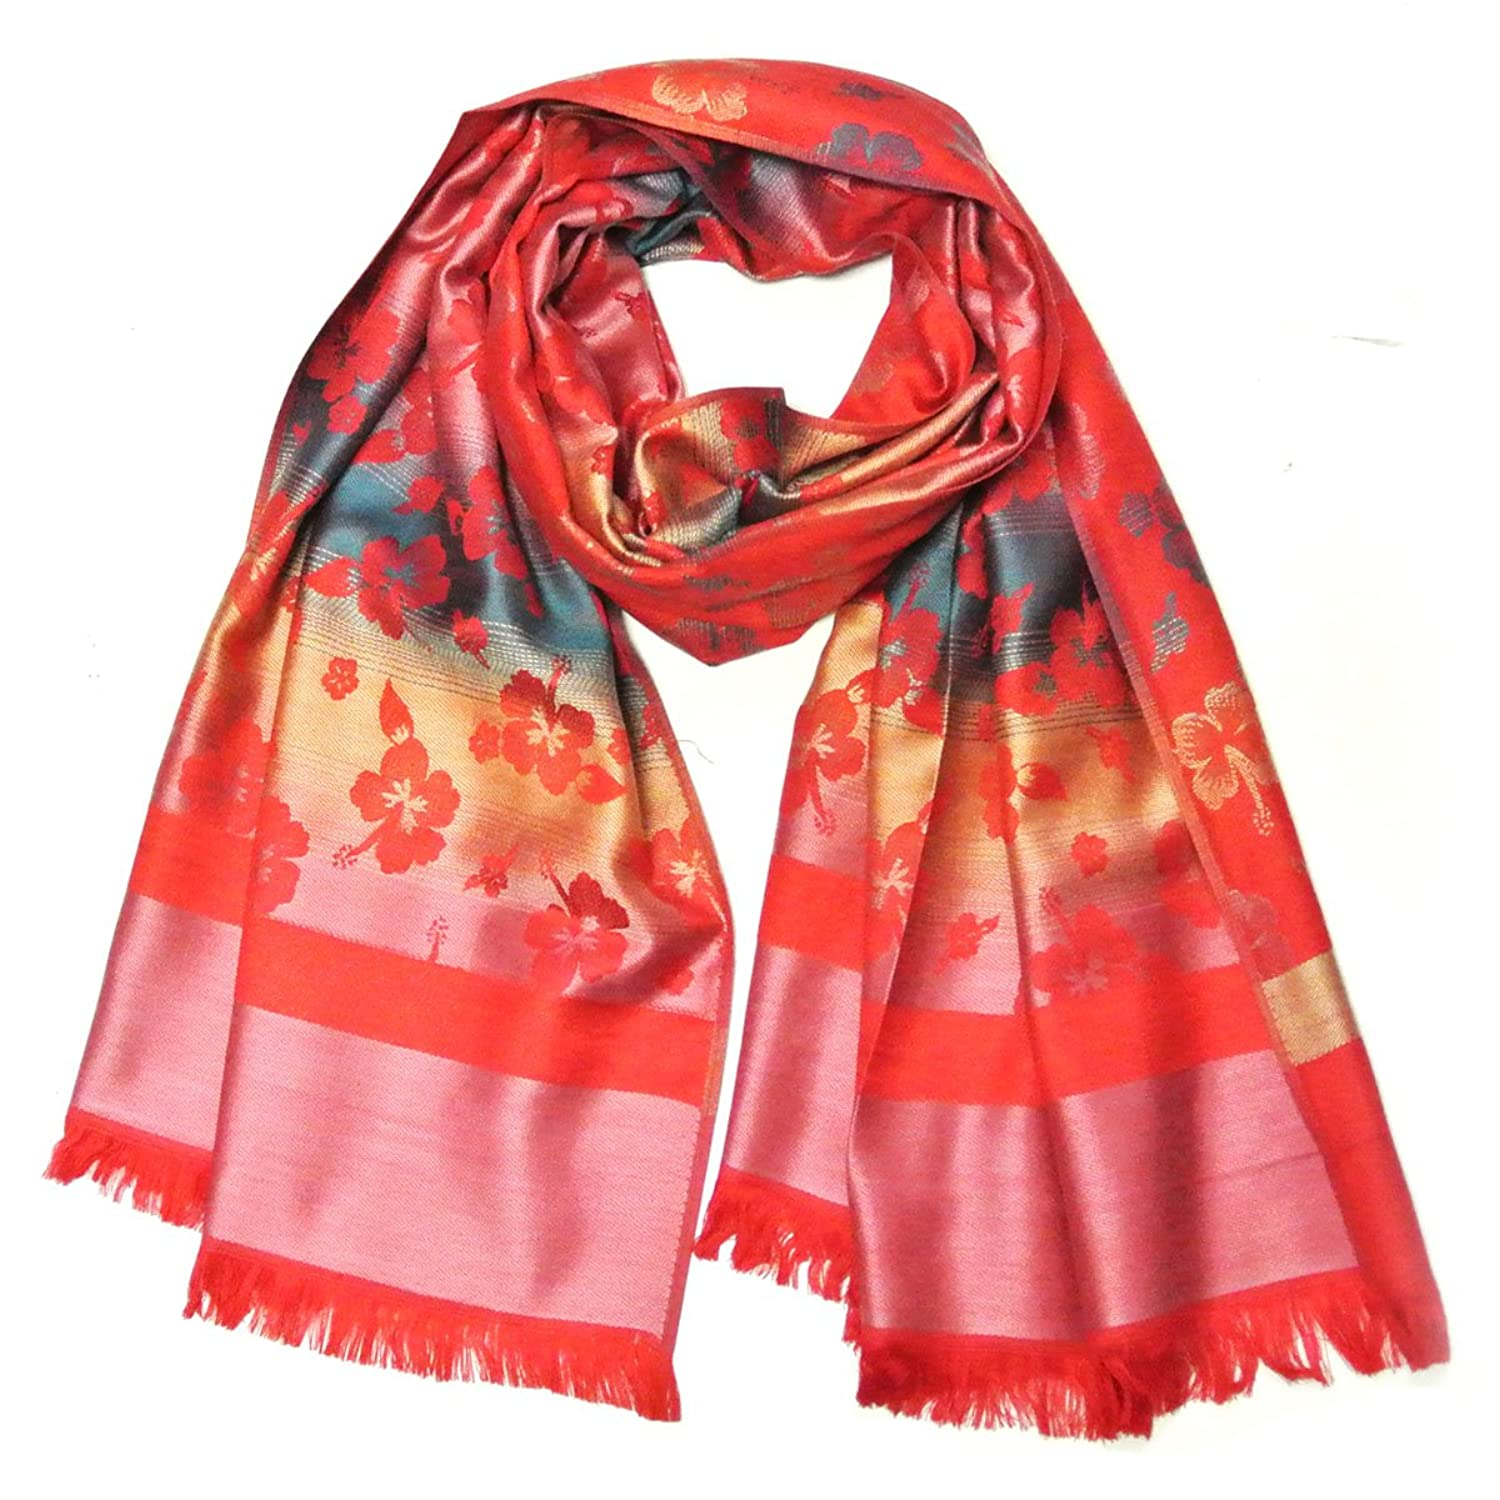 Wrapables Jacquard Woven Floral Clover Scarf Wrap, Scarlet